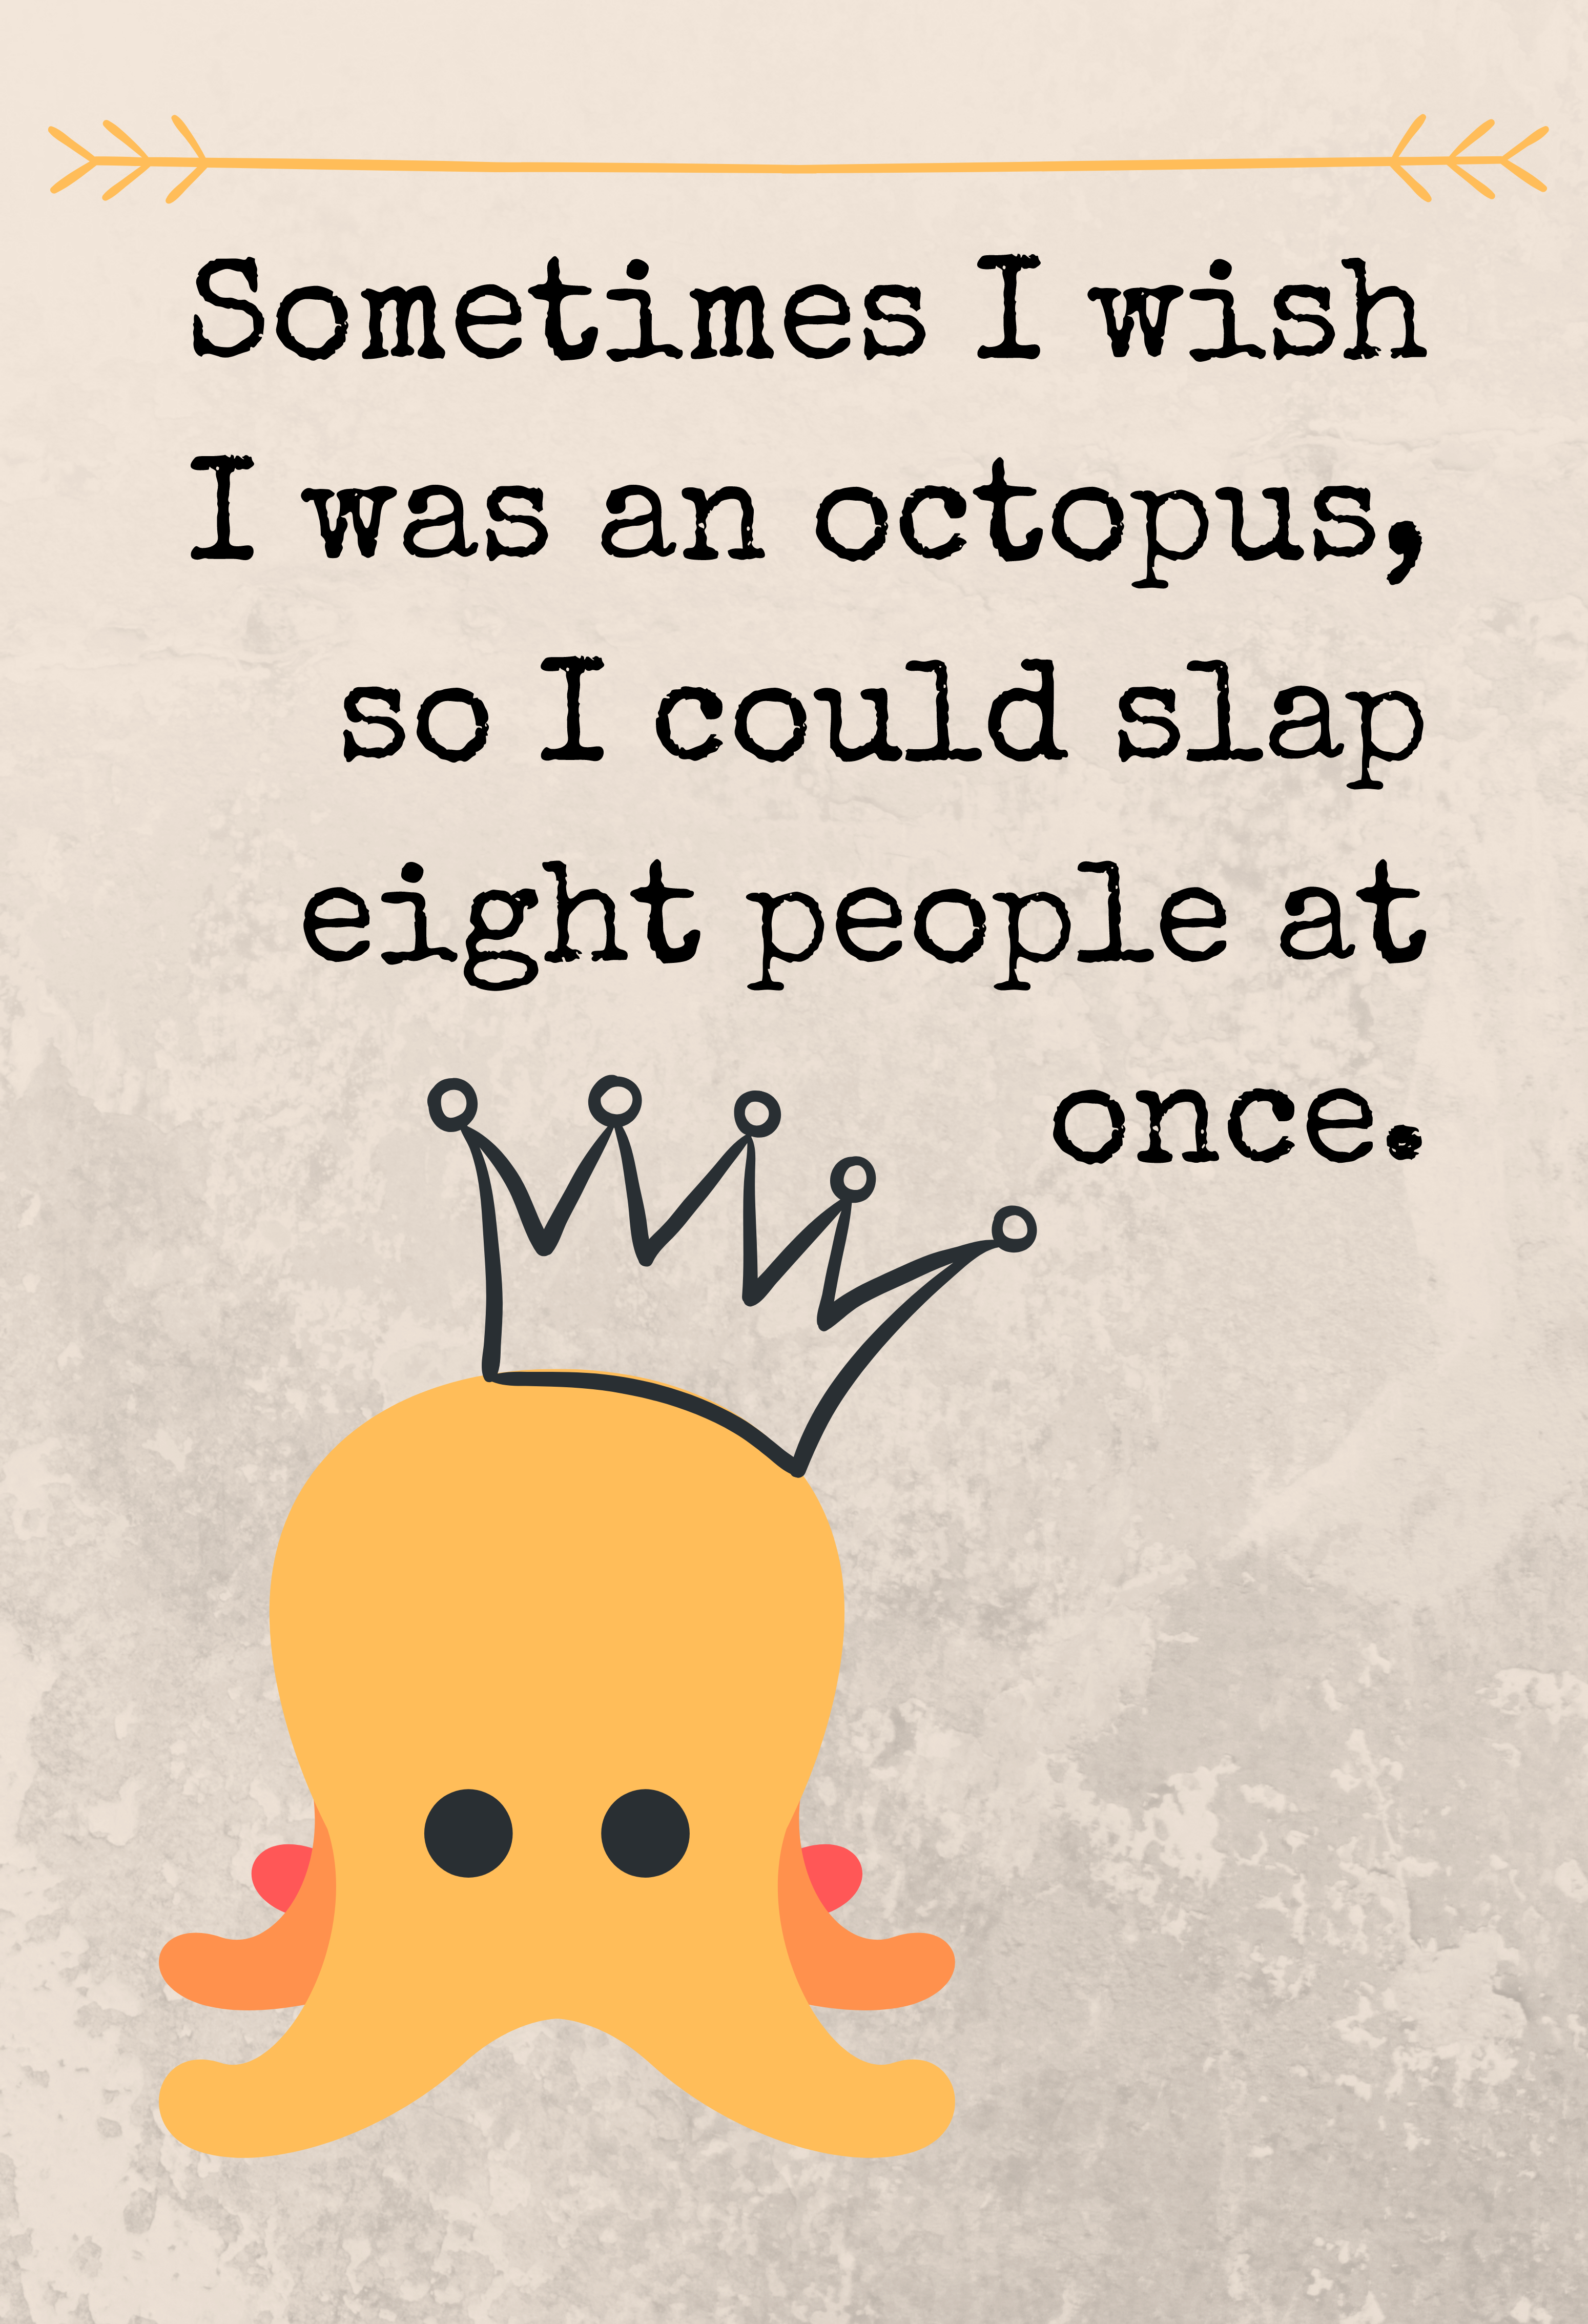 Sometimes I wish I was an octopus, so I could slap eight people at once